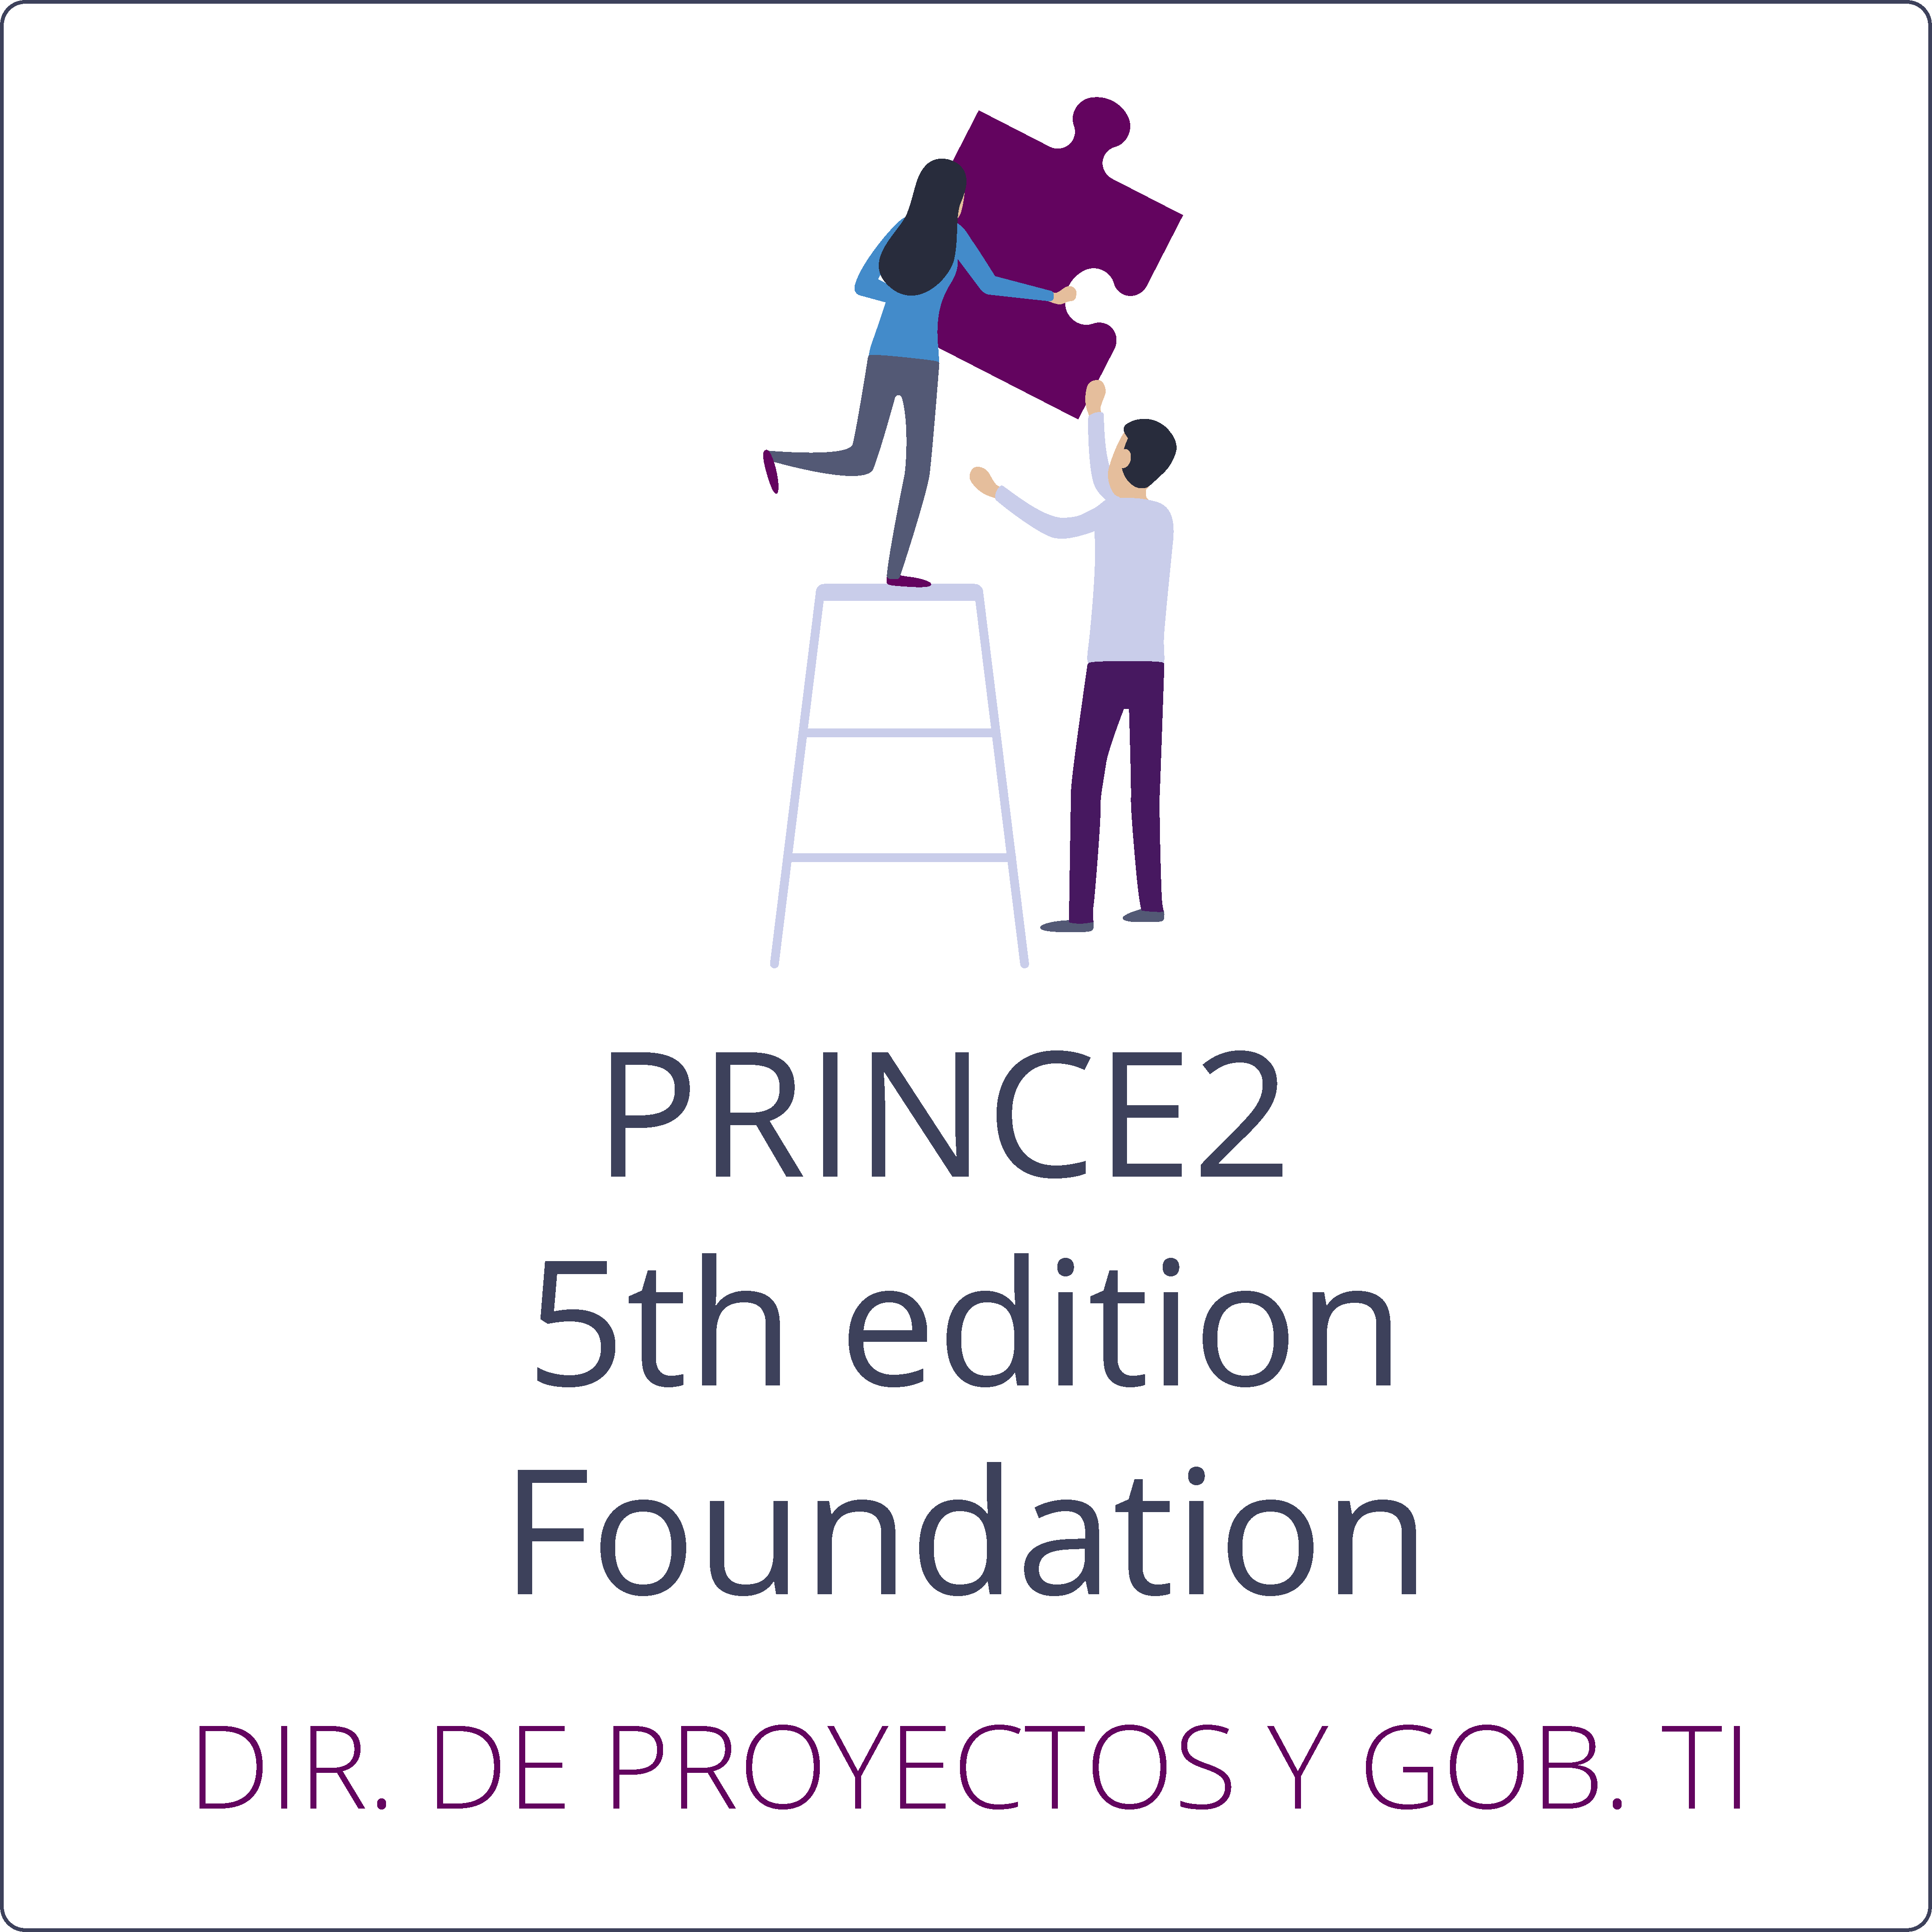 PRINCE2 5th edition Foundation